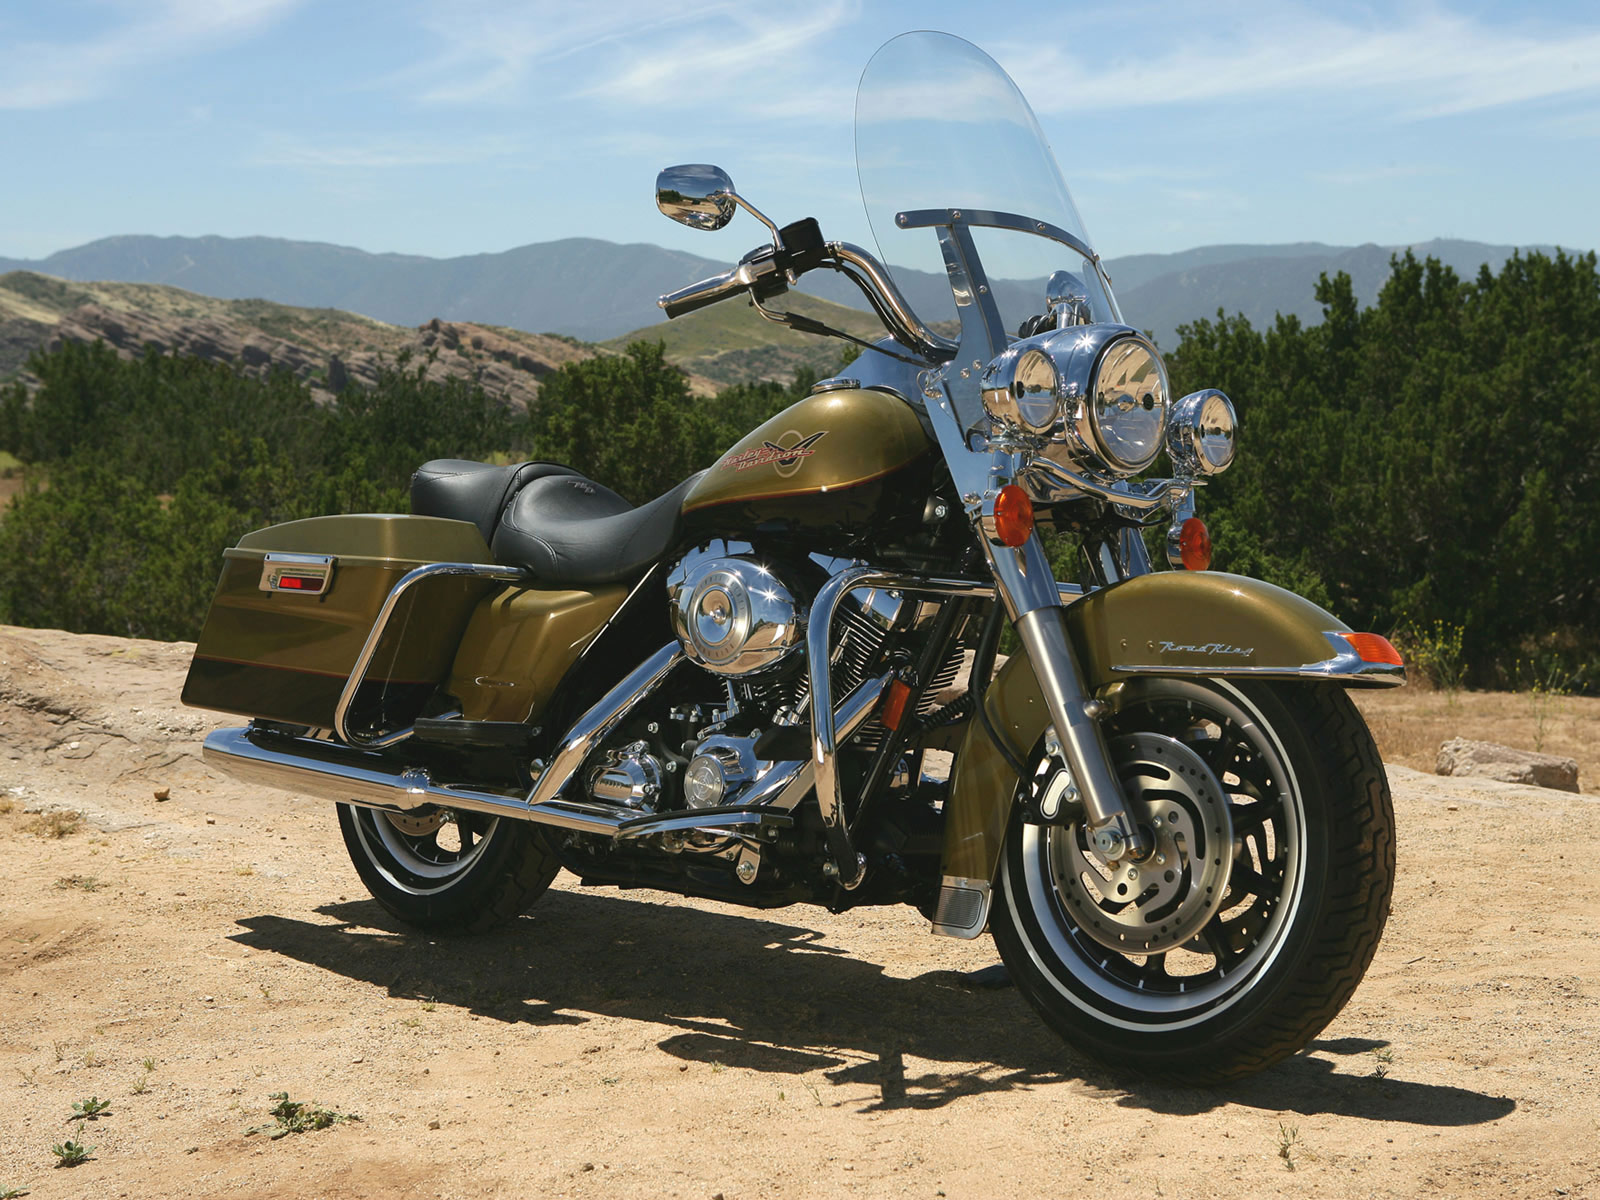 2007 Harley Davidson Flhr Road King Pics Specs And